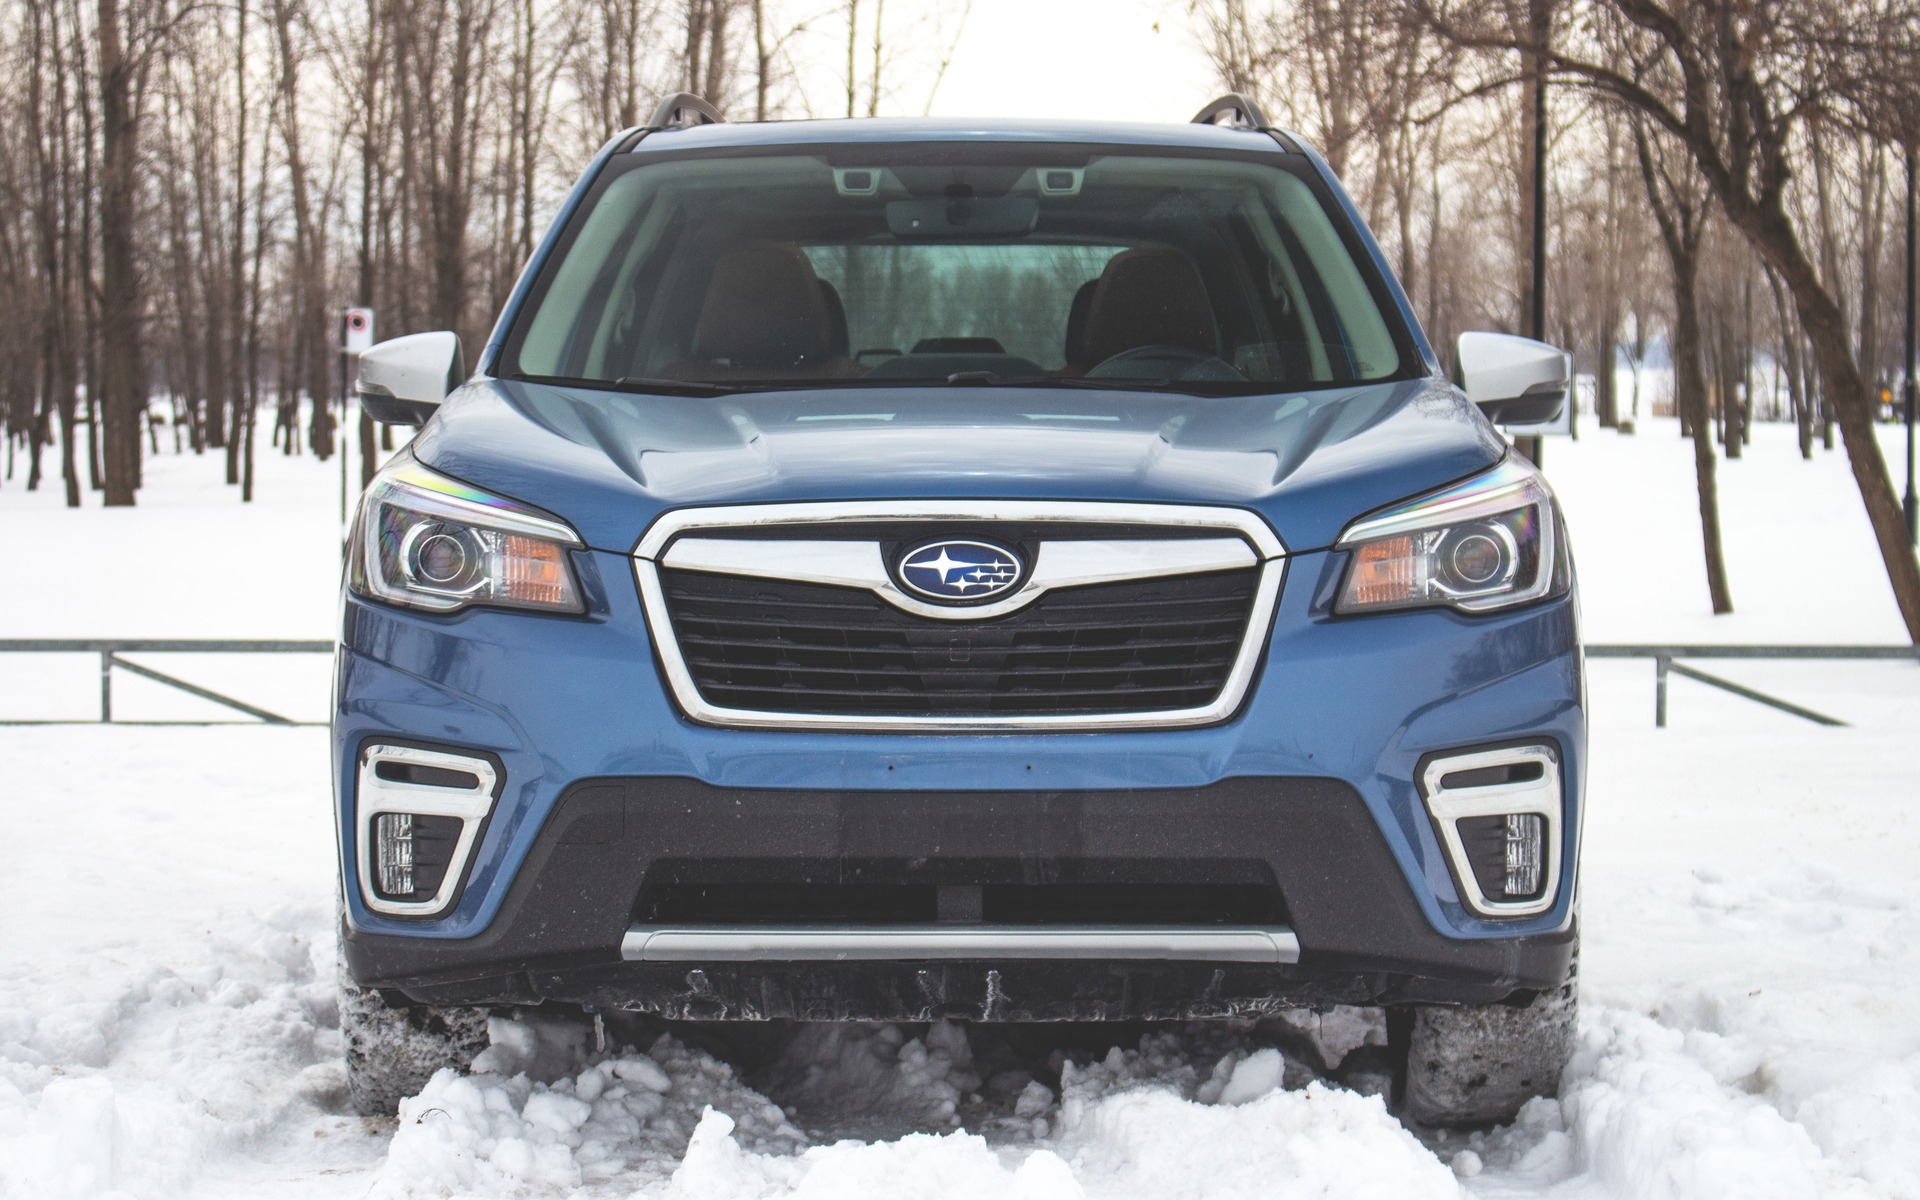 2019 Subaru Forester: Diluting the Soul - The Car Guide